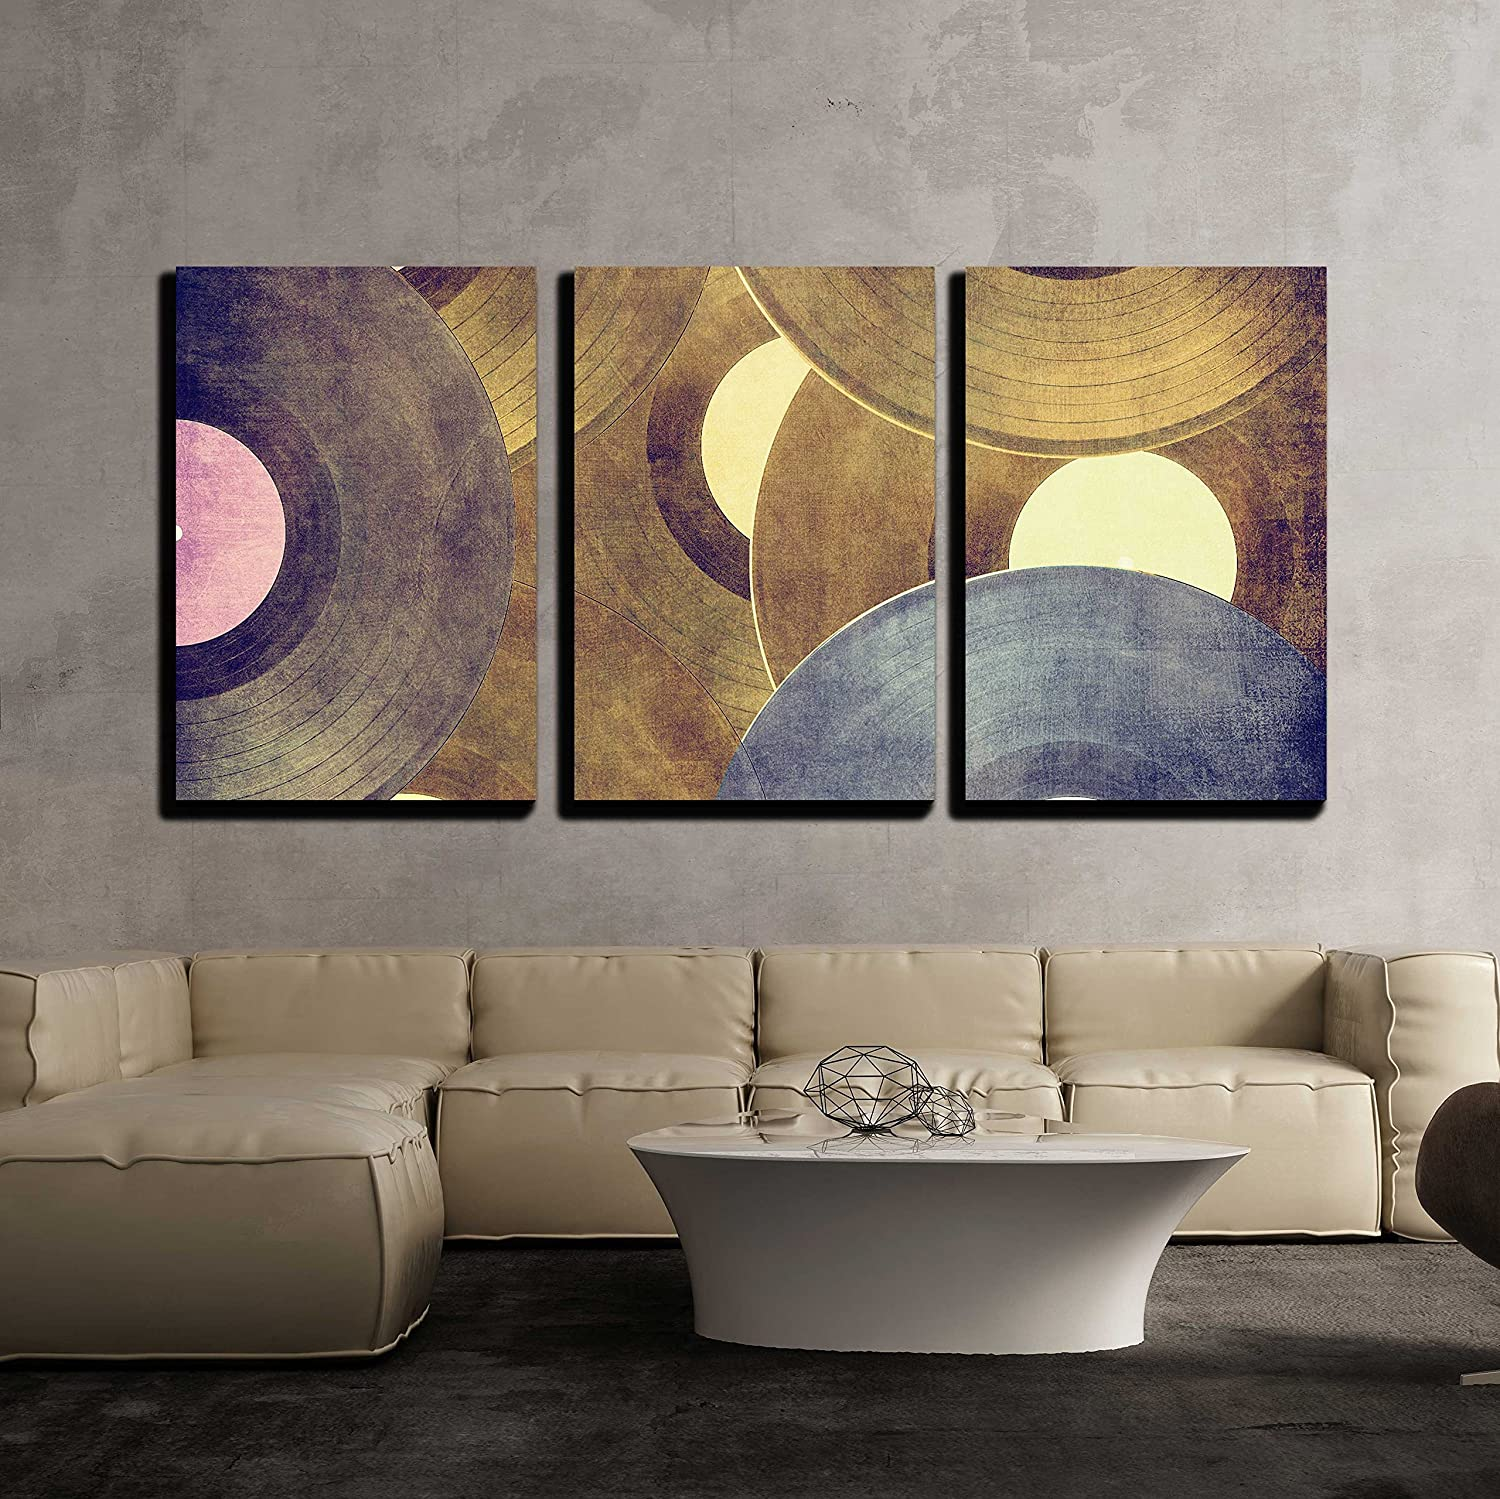 wall26-3 Piece Canvas Wall Art - Vinyl Records Music Background ...